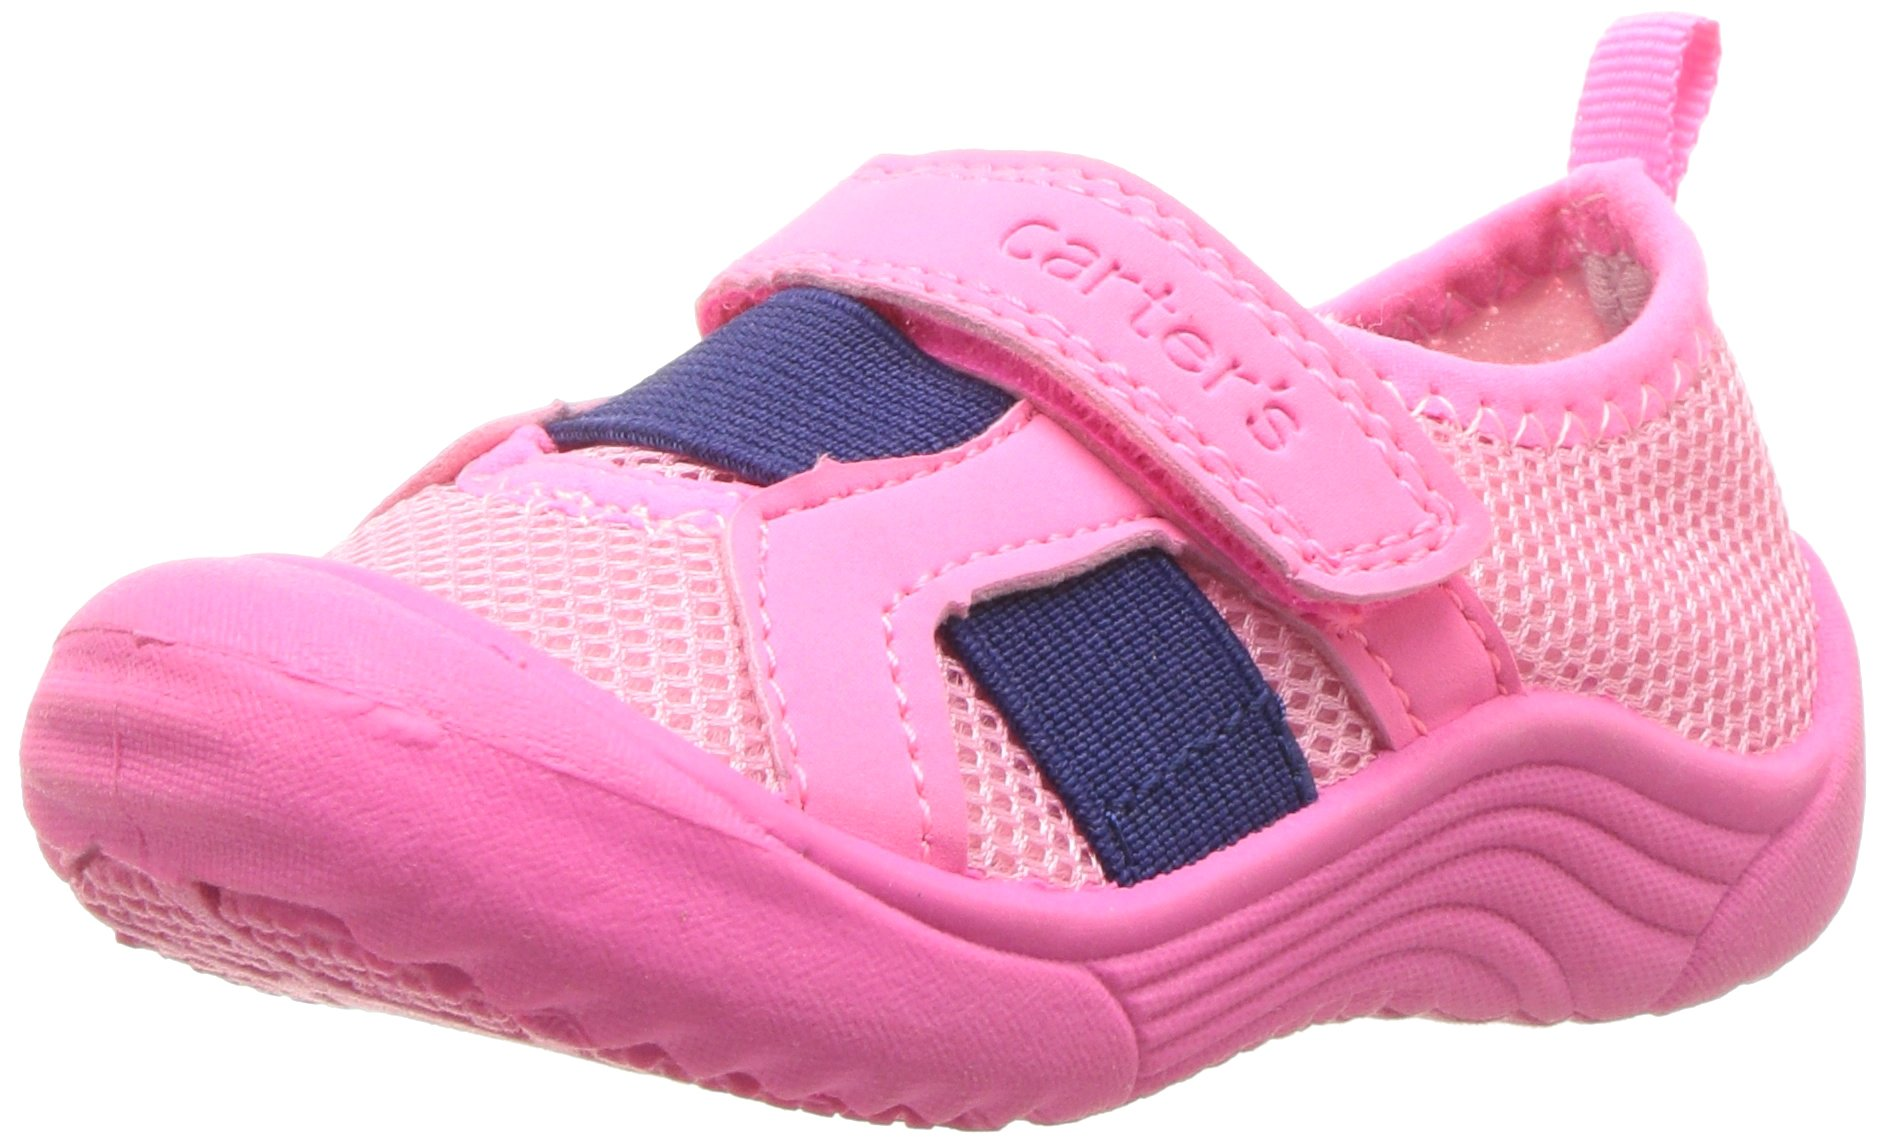 Carter's Baby Troop Boy's and Girl's Water Shoe, Pink, 8 M US Toddler